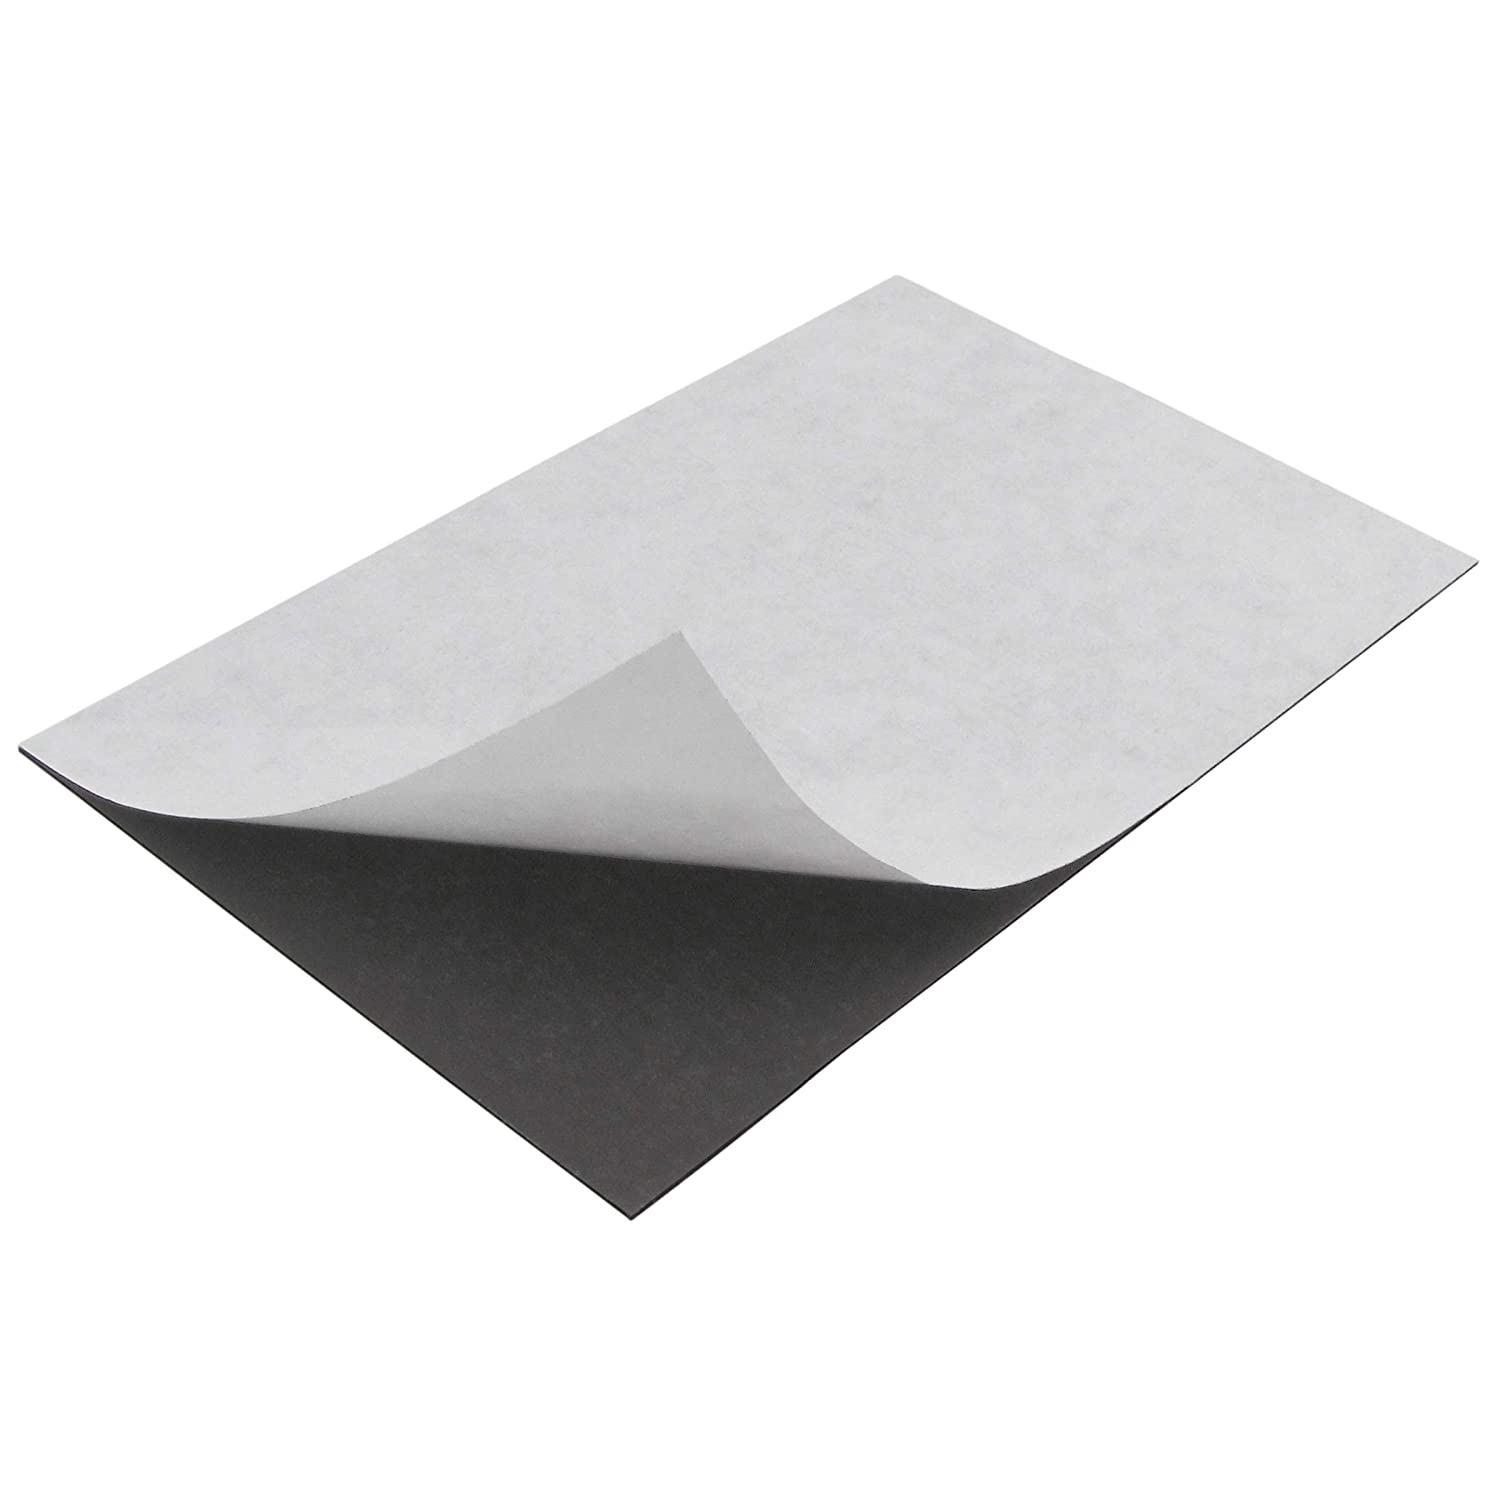 Magnetic Sheets in a variety of sizes